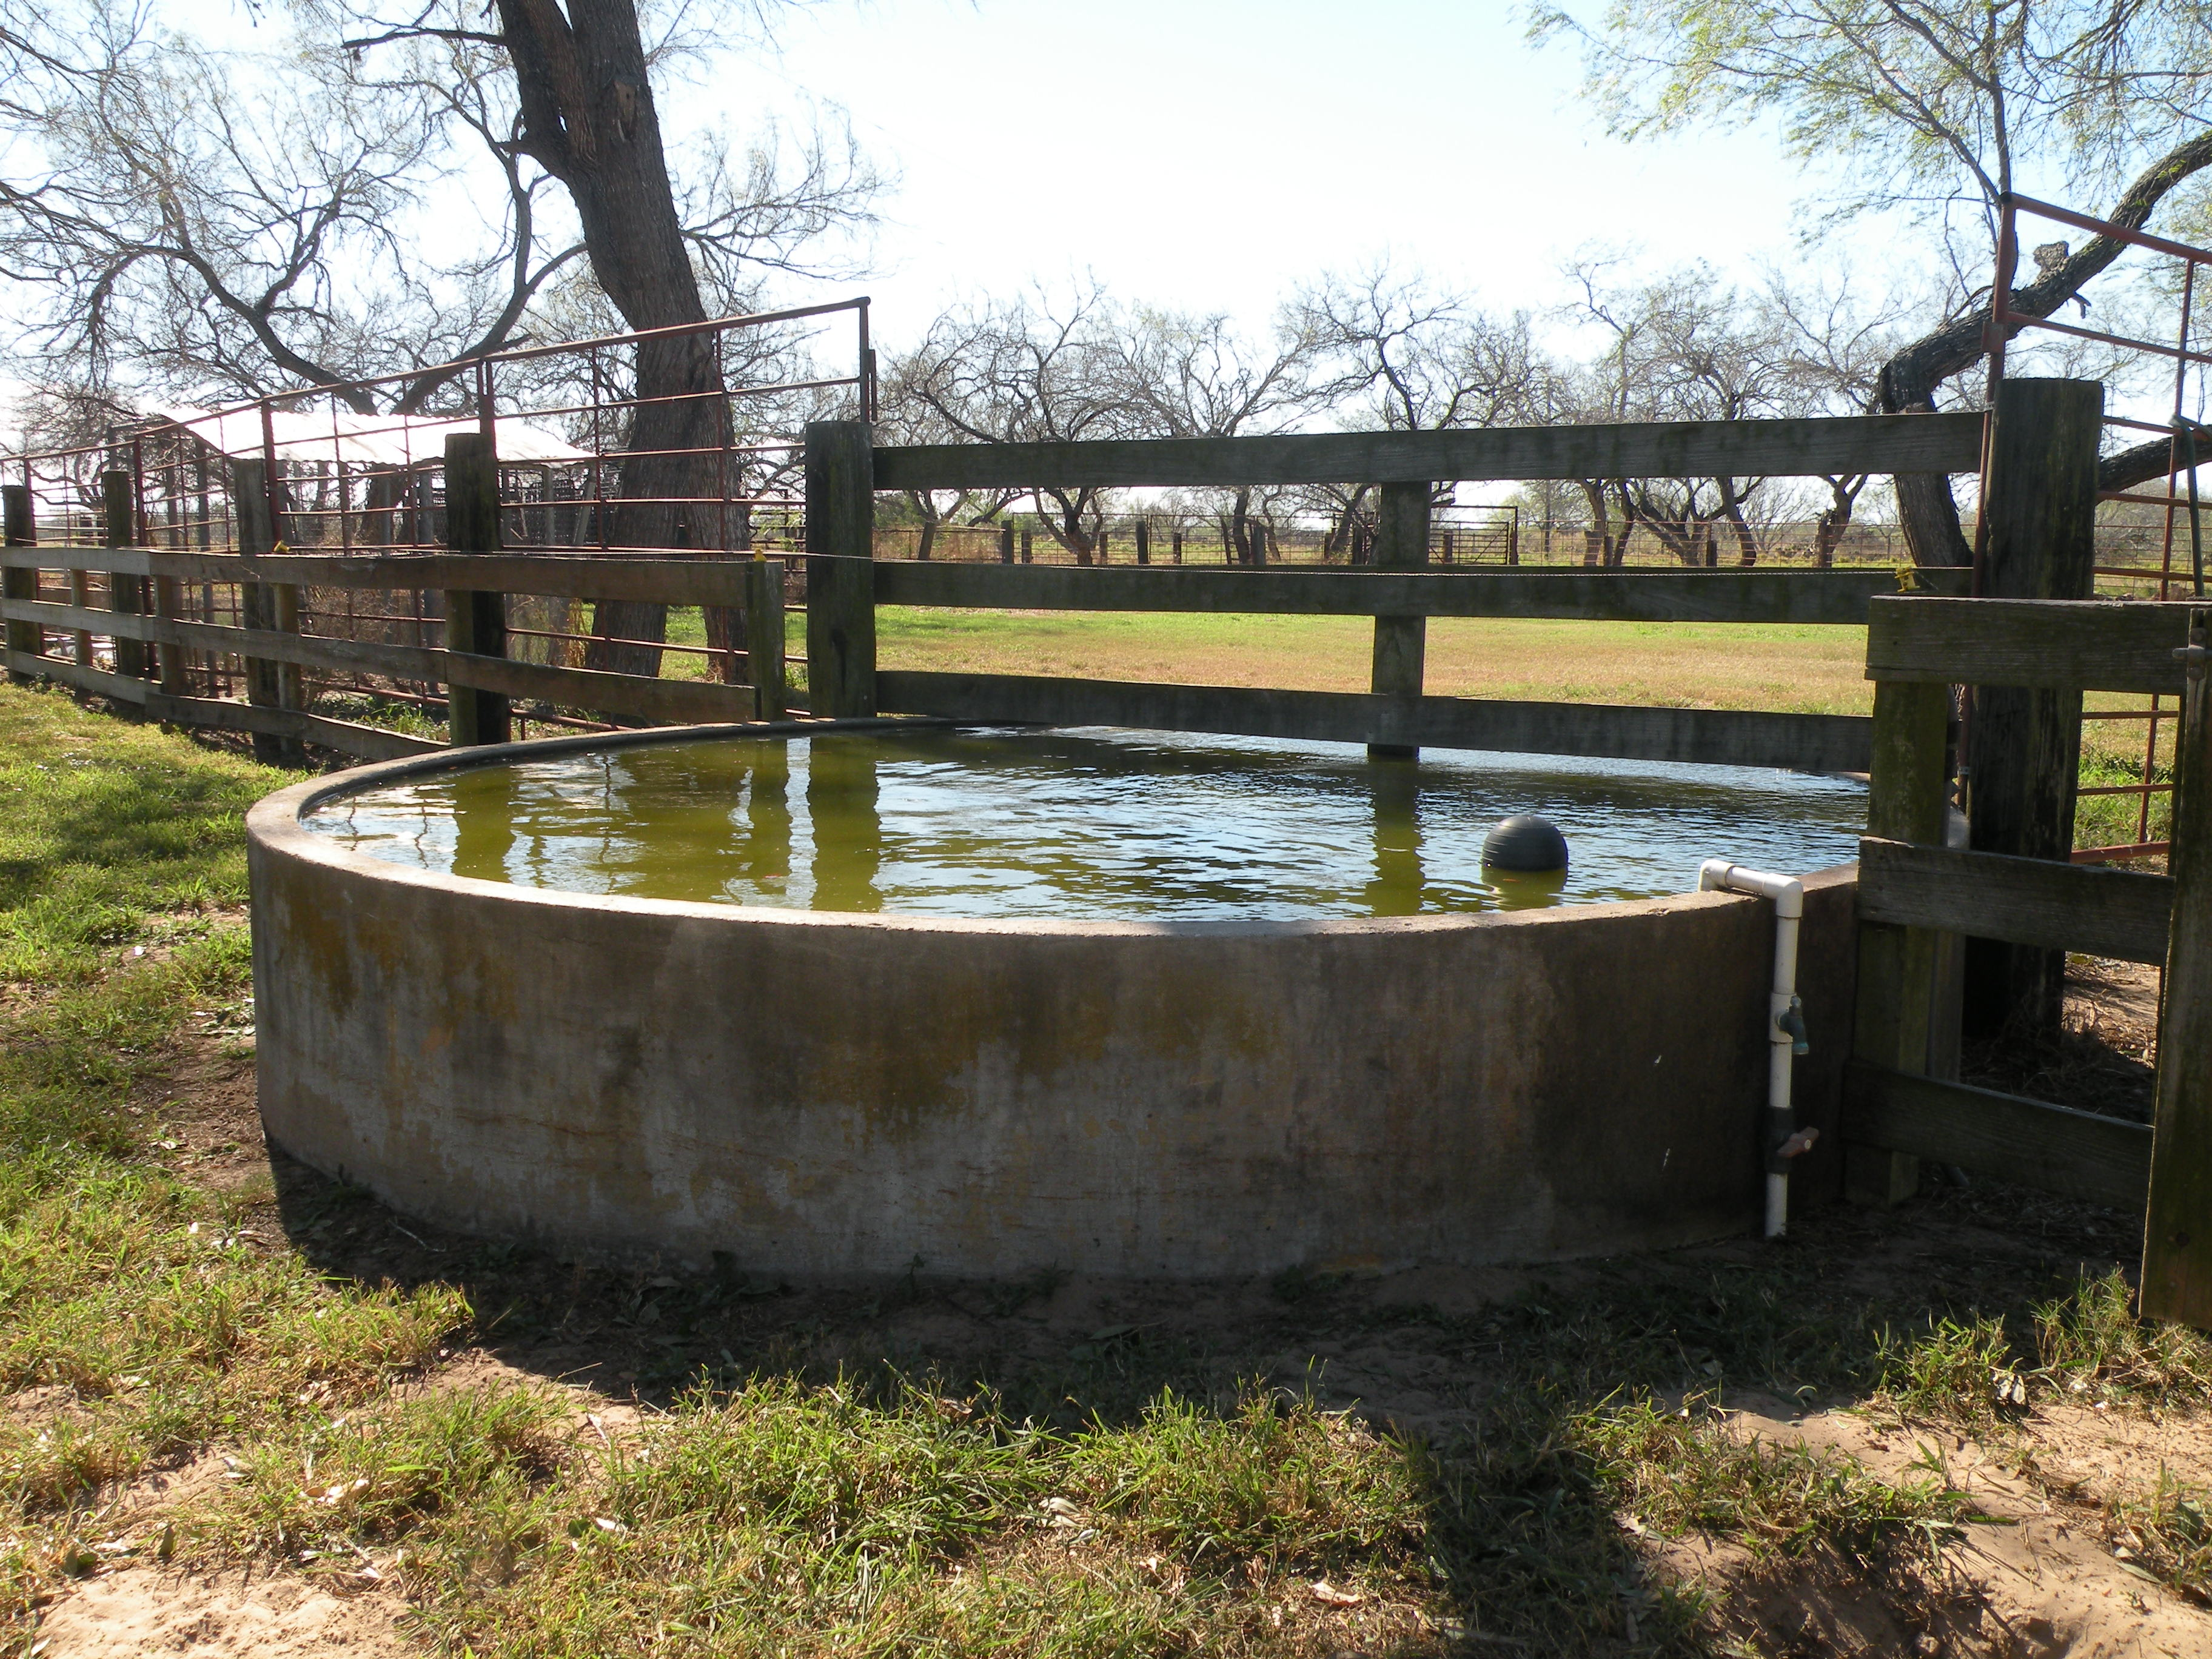 Another View of Water Trough